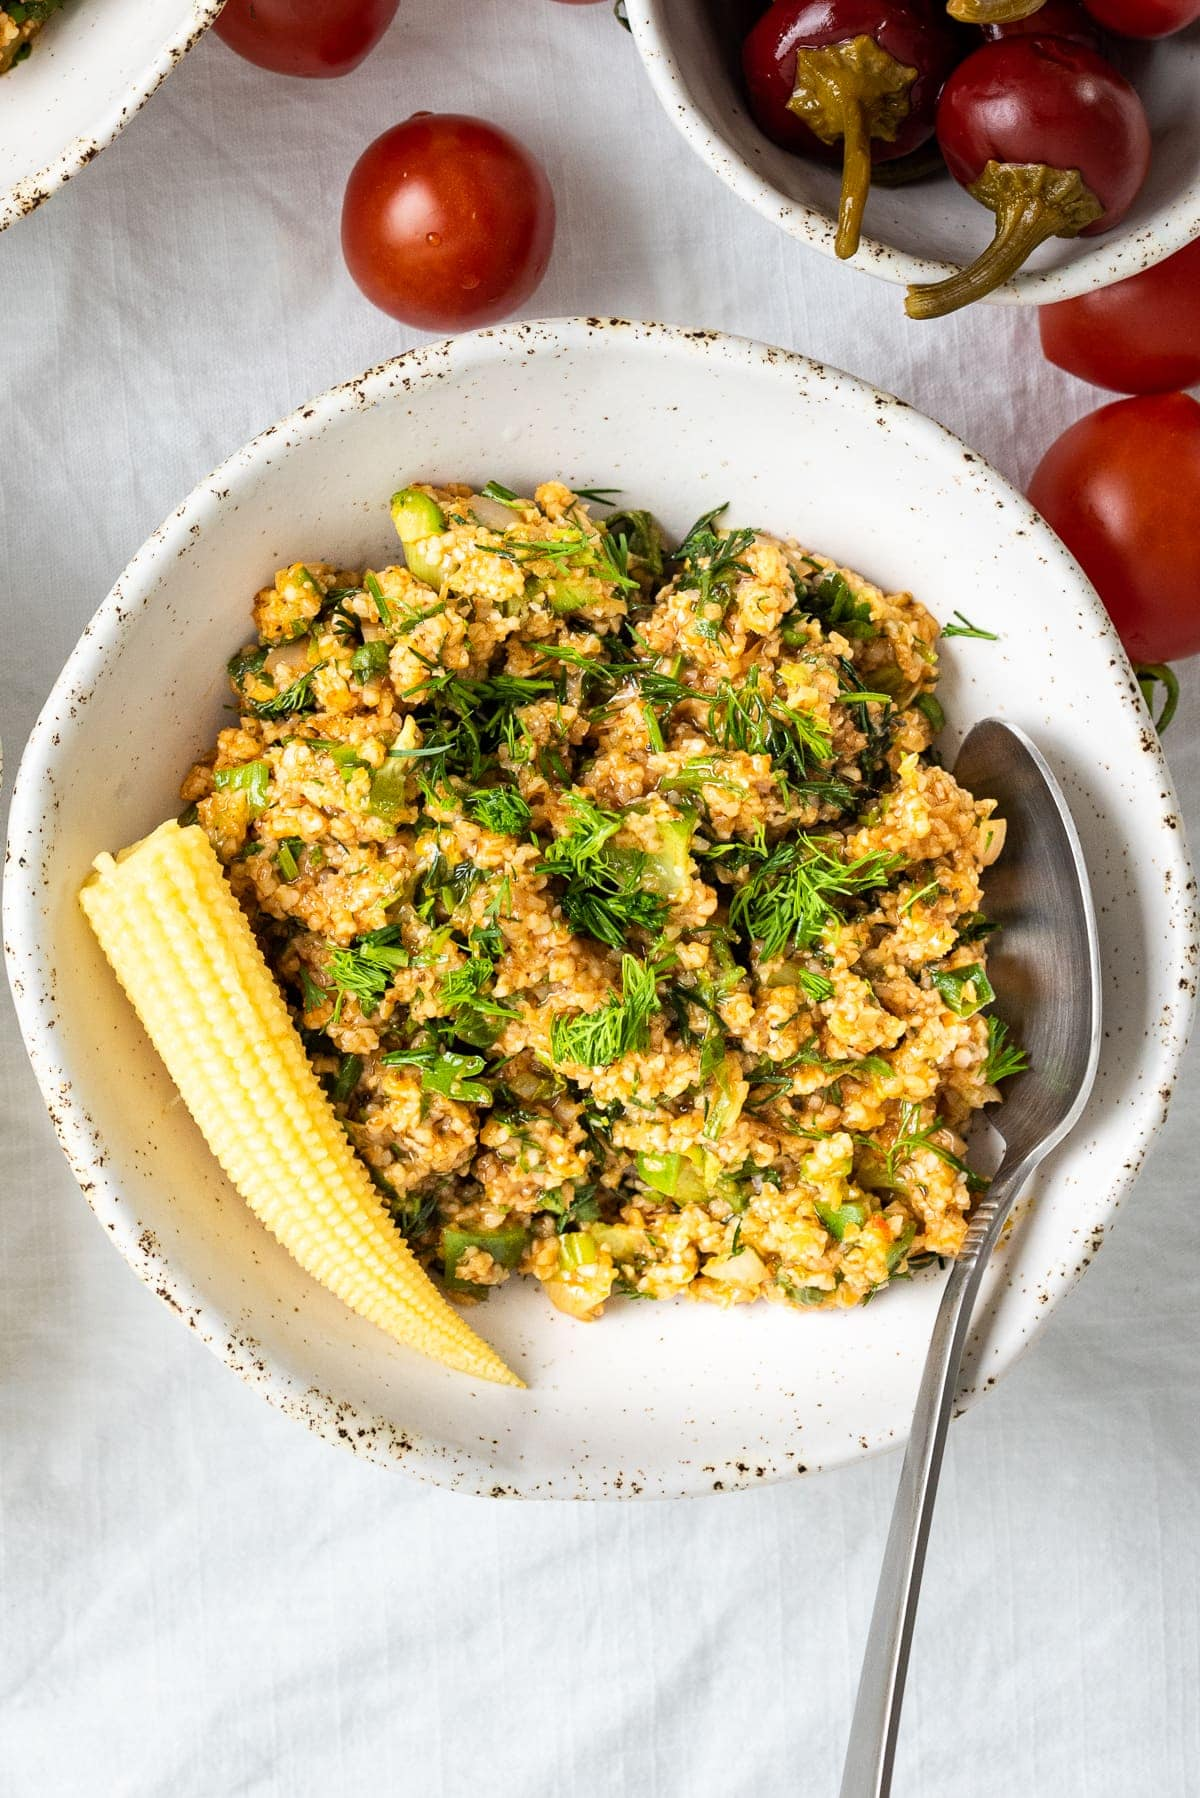 Turkish bulgur salad kısır in a white ceramic bowl, a spoon inside it and a pickled baby corn on the left top.